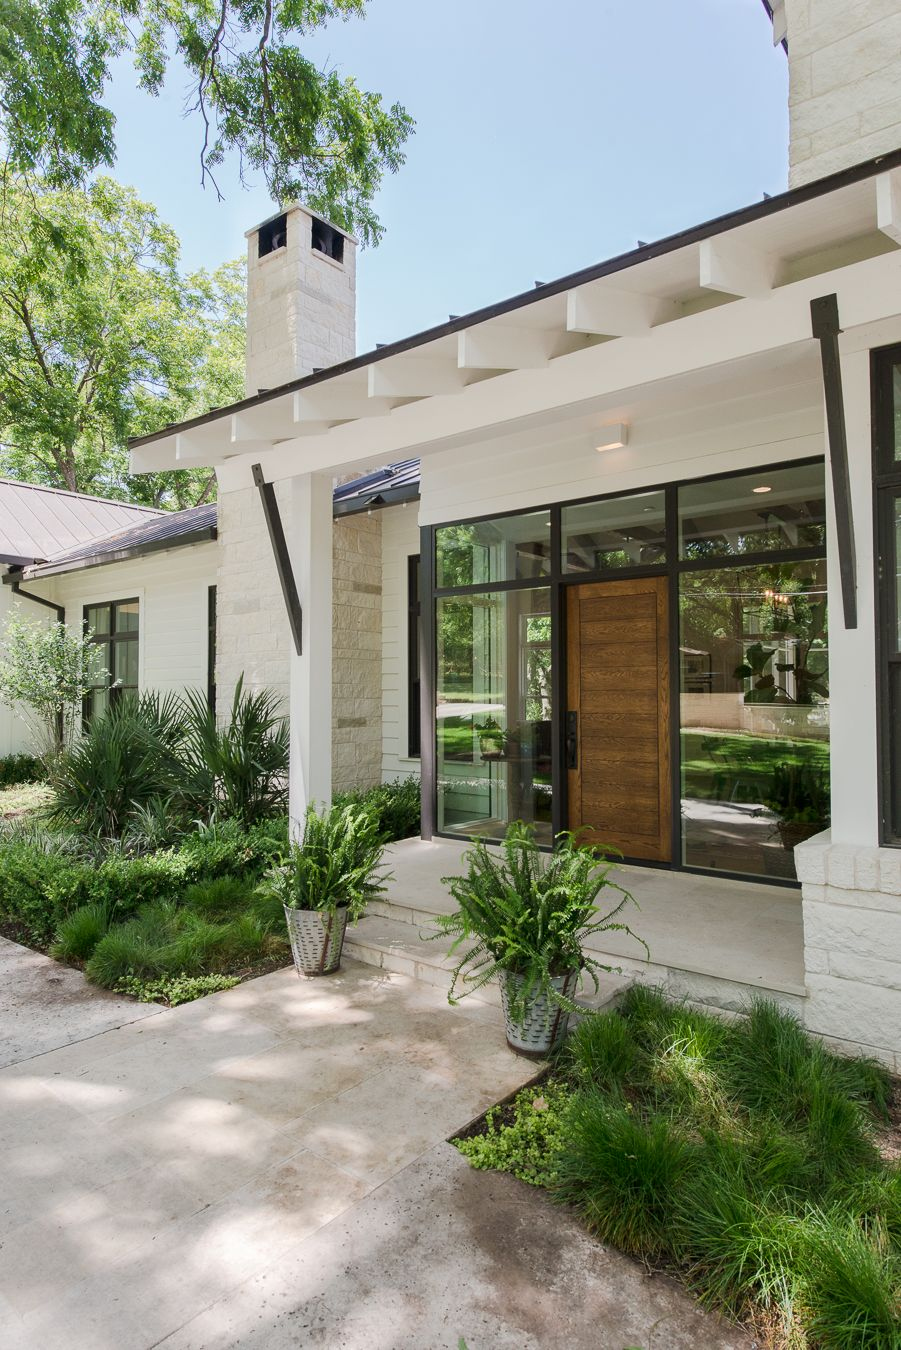 good white, black, bronze and natural wood combination in ... on natural wood exterior paint color, natural wood interior design, natural wood kitchen ideas, natural wood texture background,